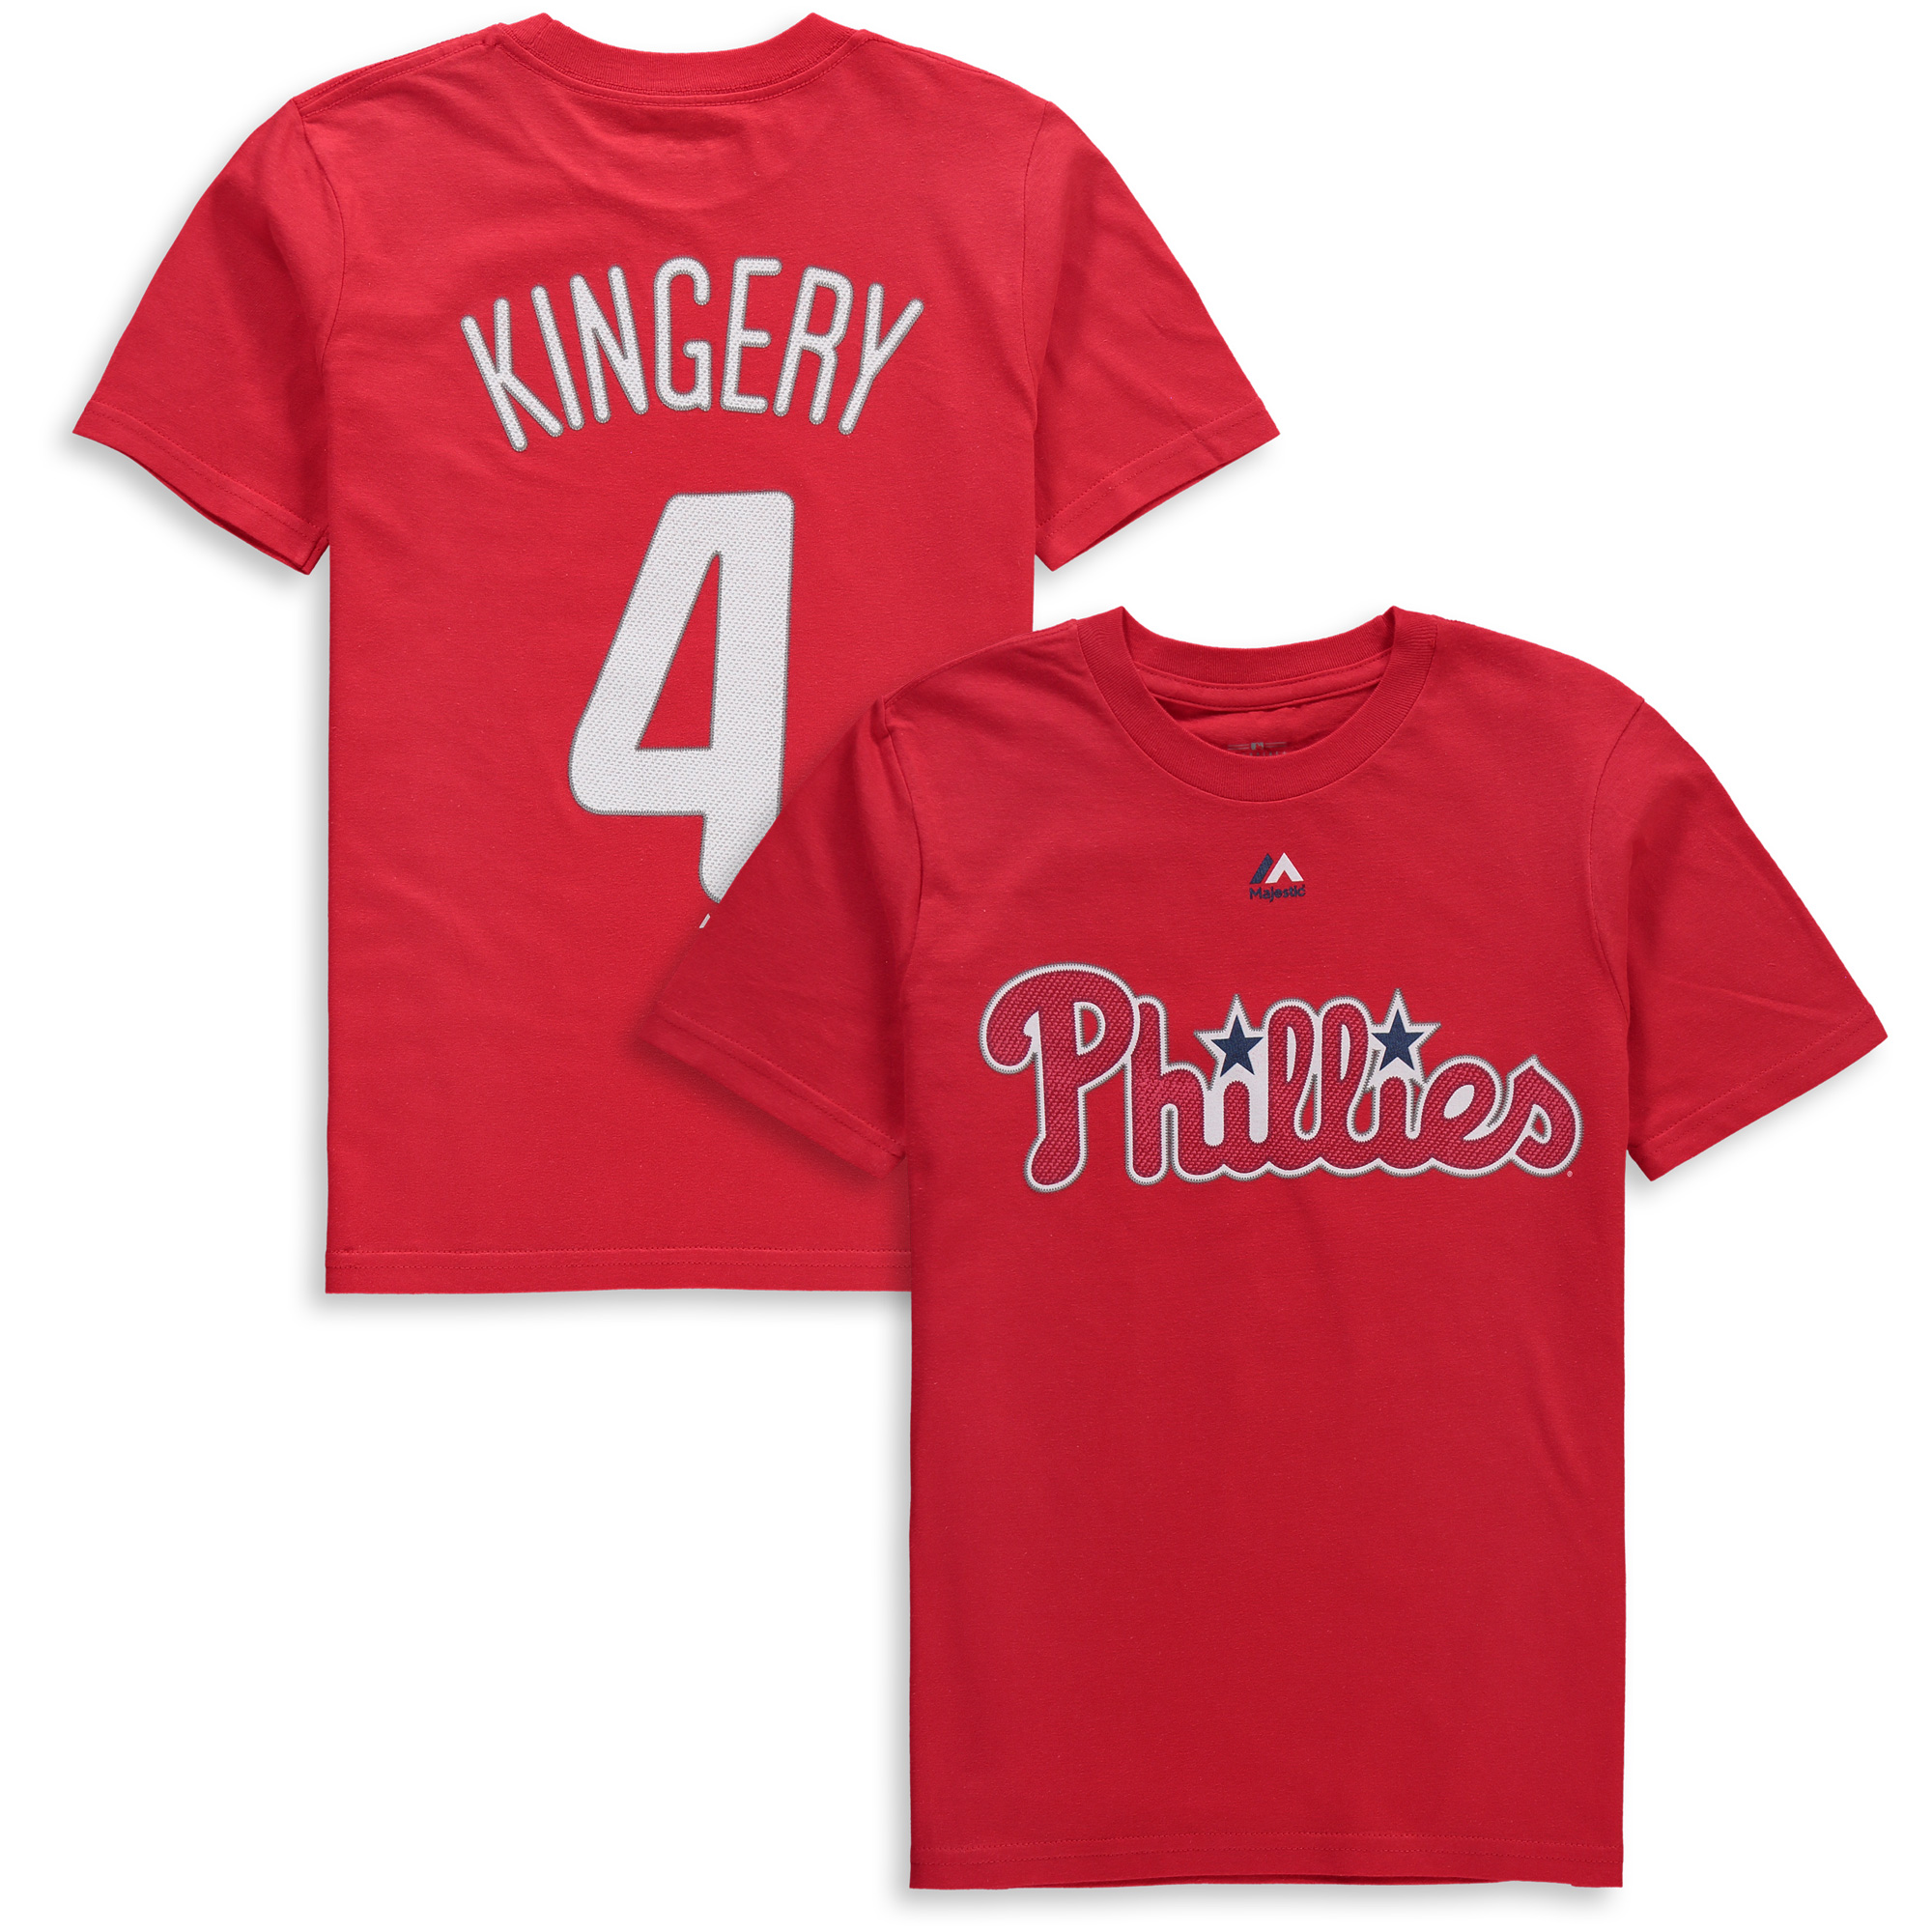 Scott Kingery Philadelphia Phillies Majestic Youth Player Name & Number T-Shirt - Red